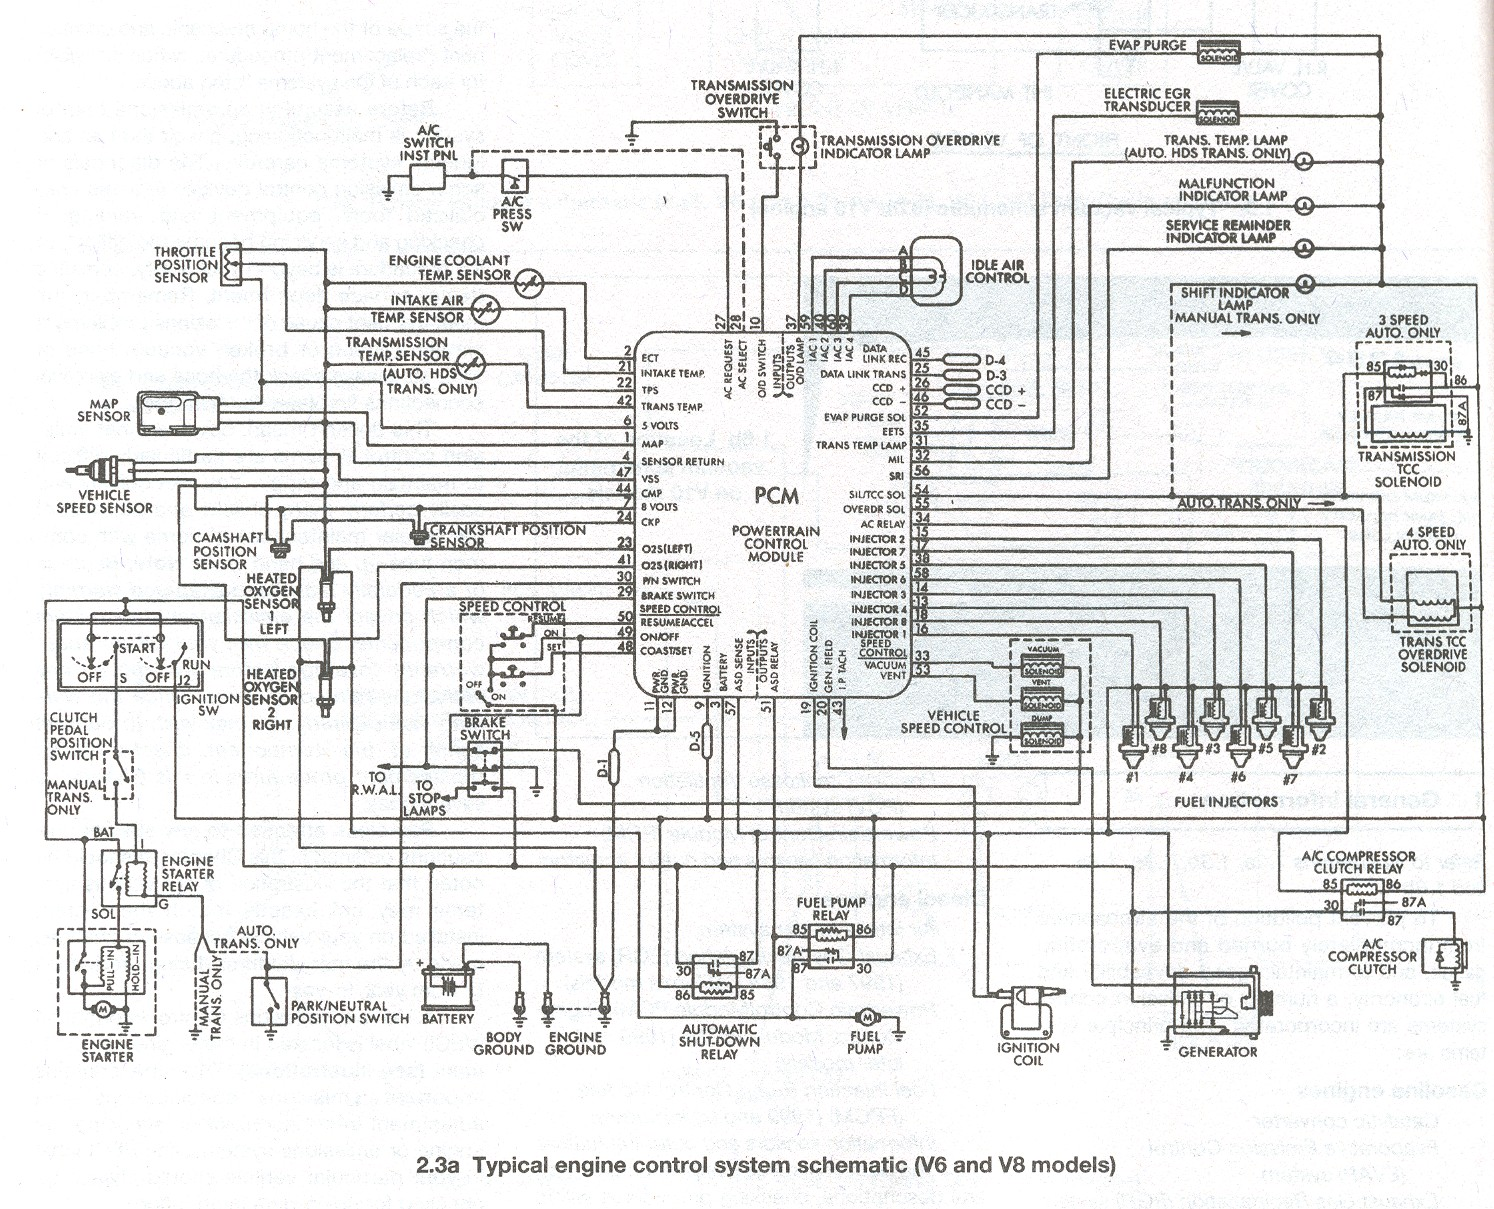 1973 Plymouth Duster Wiring Diagram : 35 Wiring Diagram